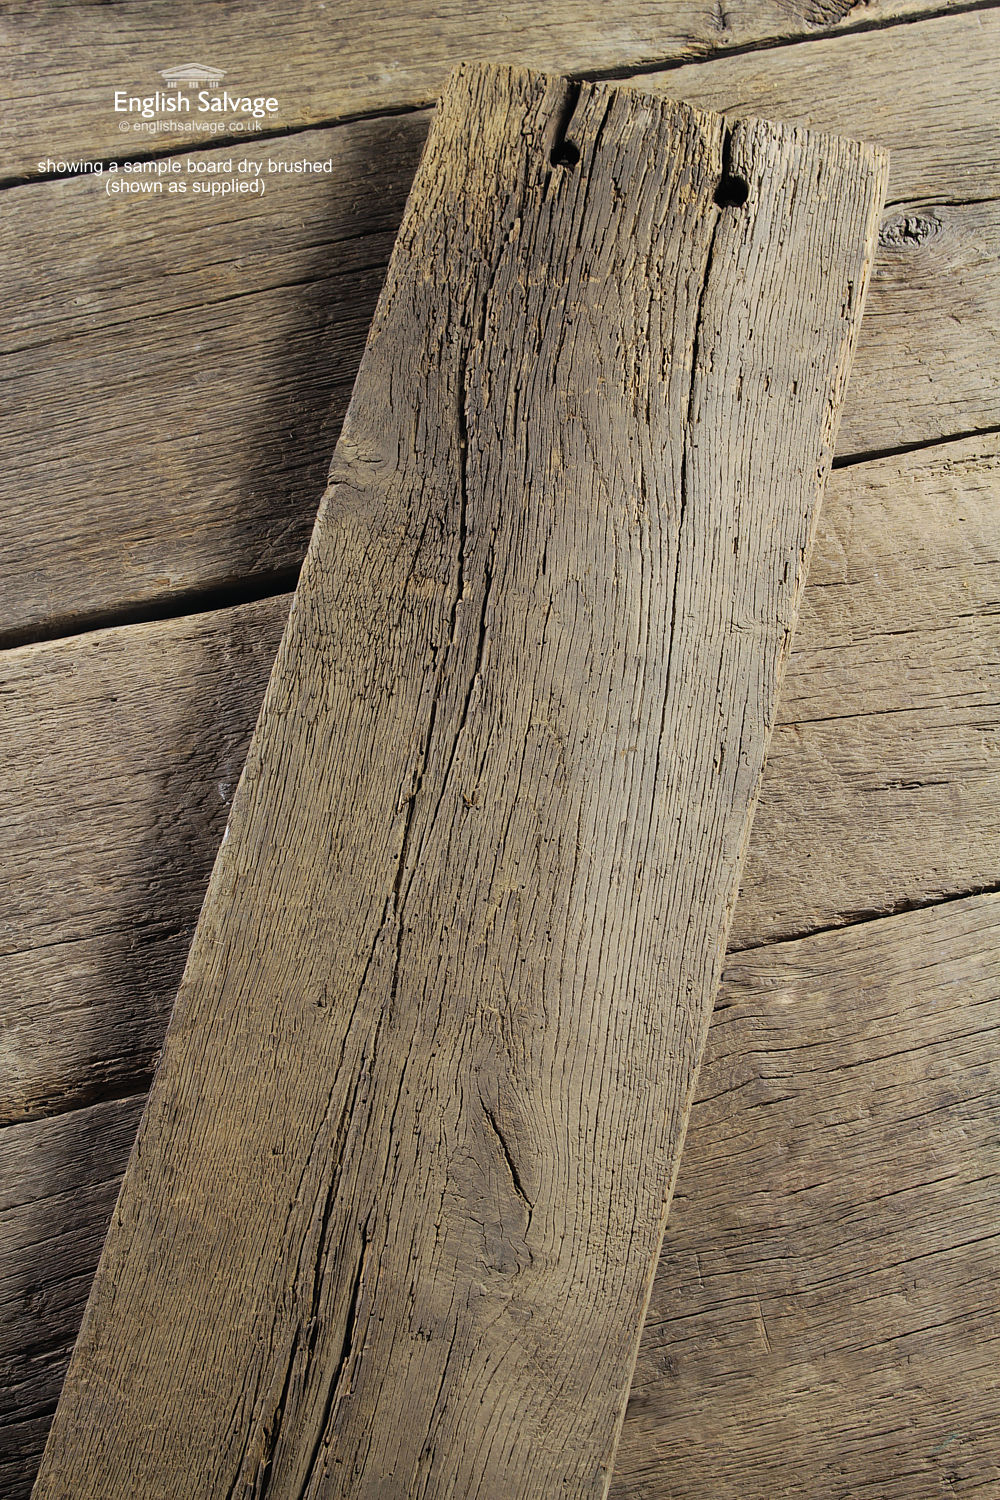 Antique French Oak Pitsawn Wood Floorboards